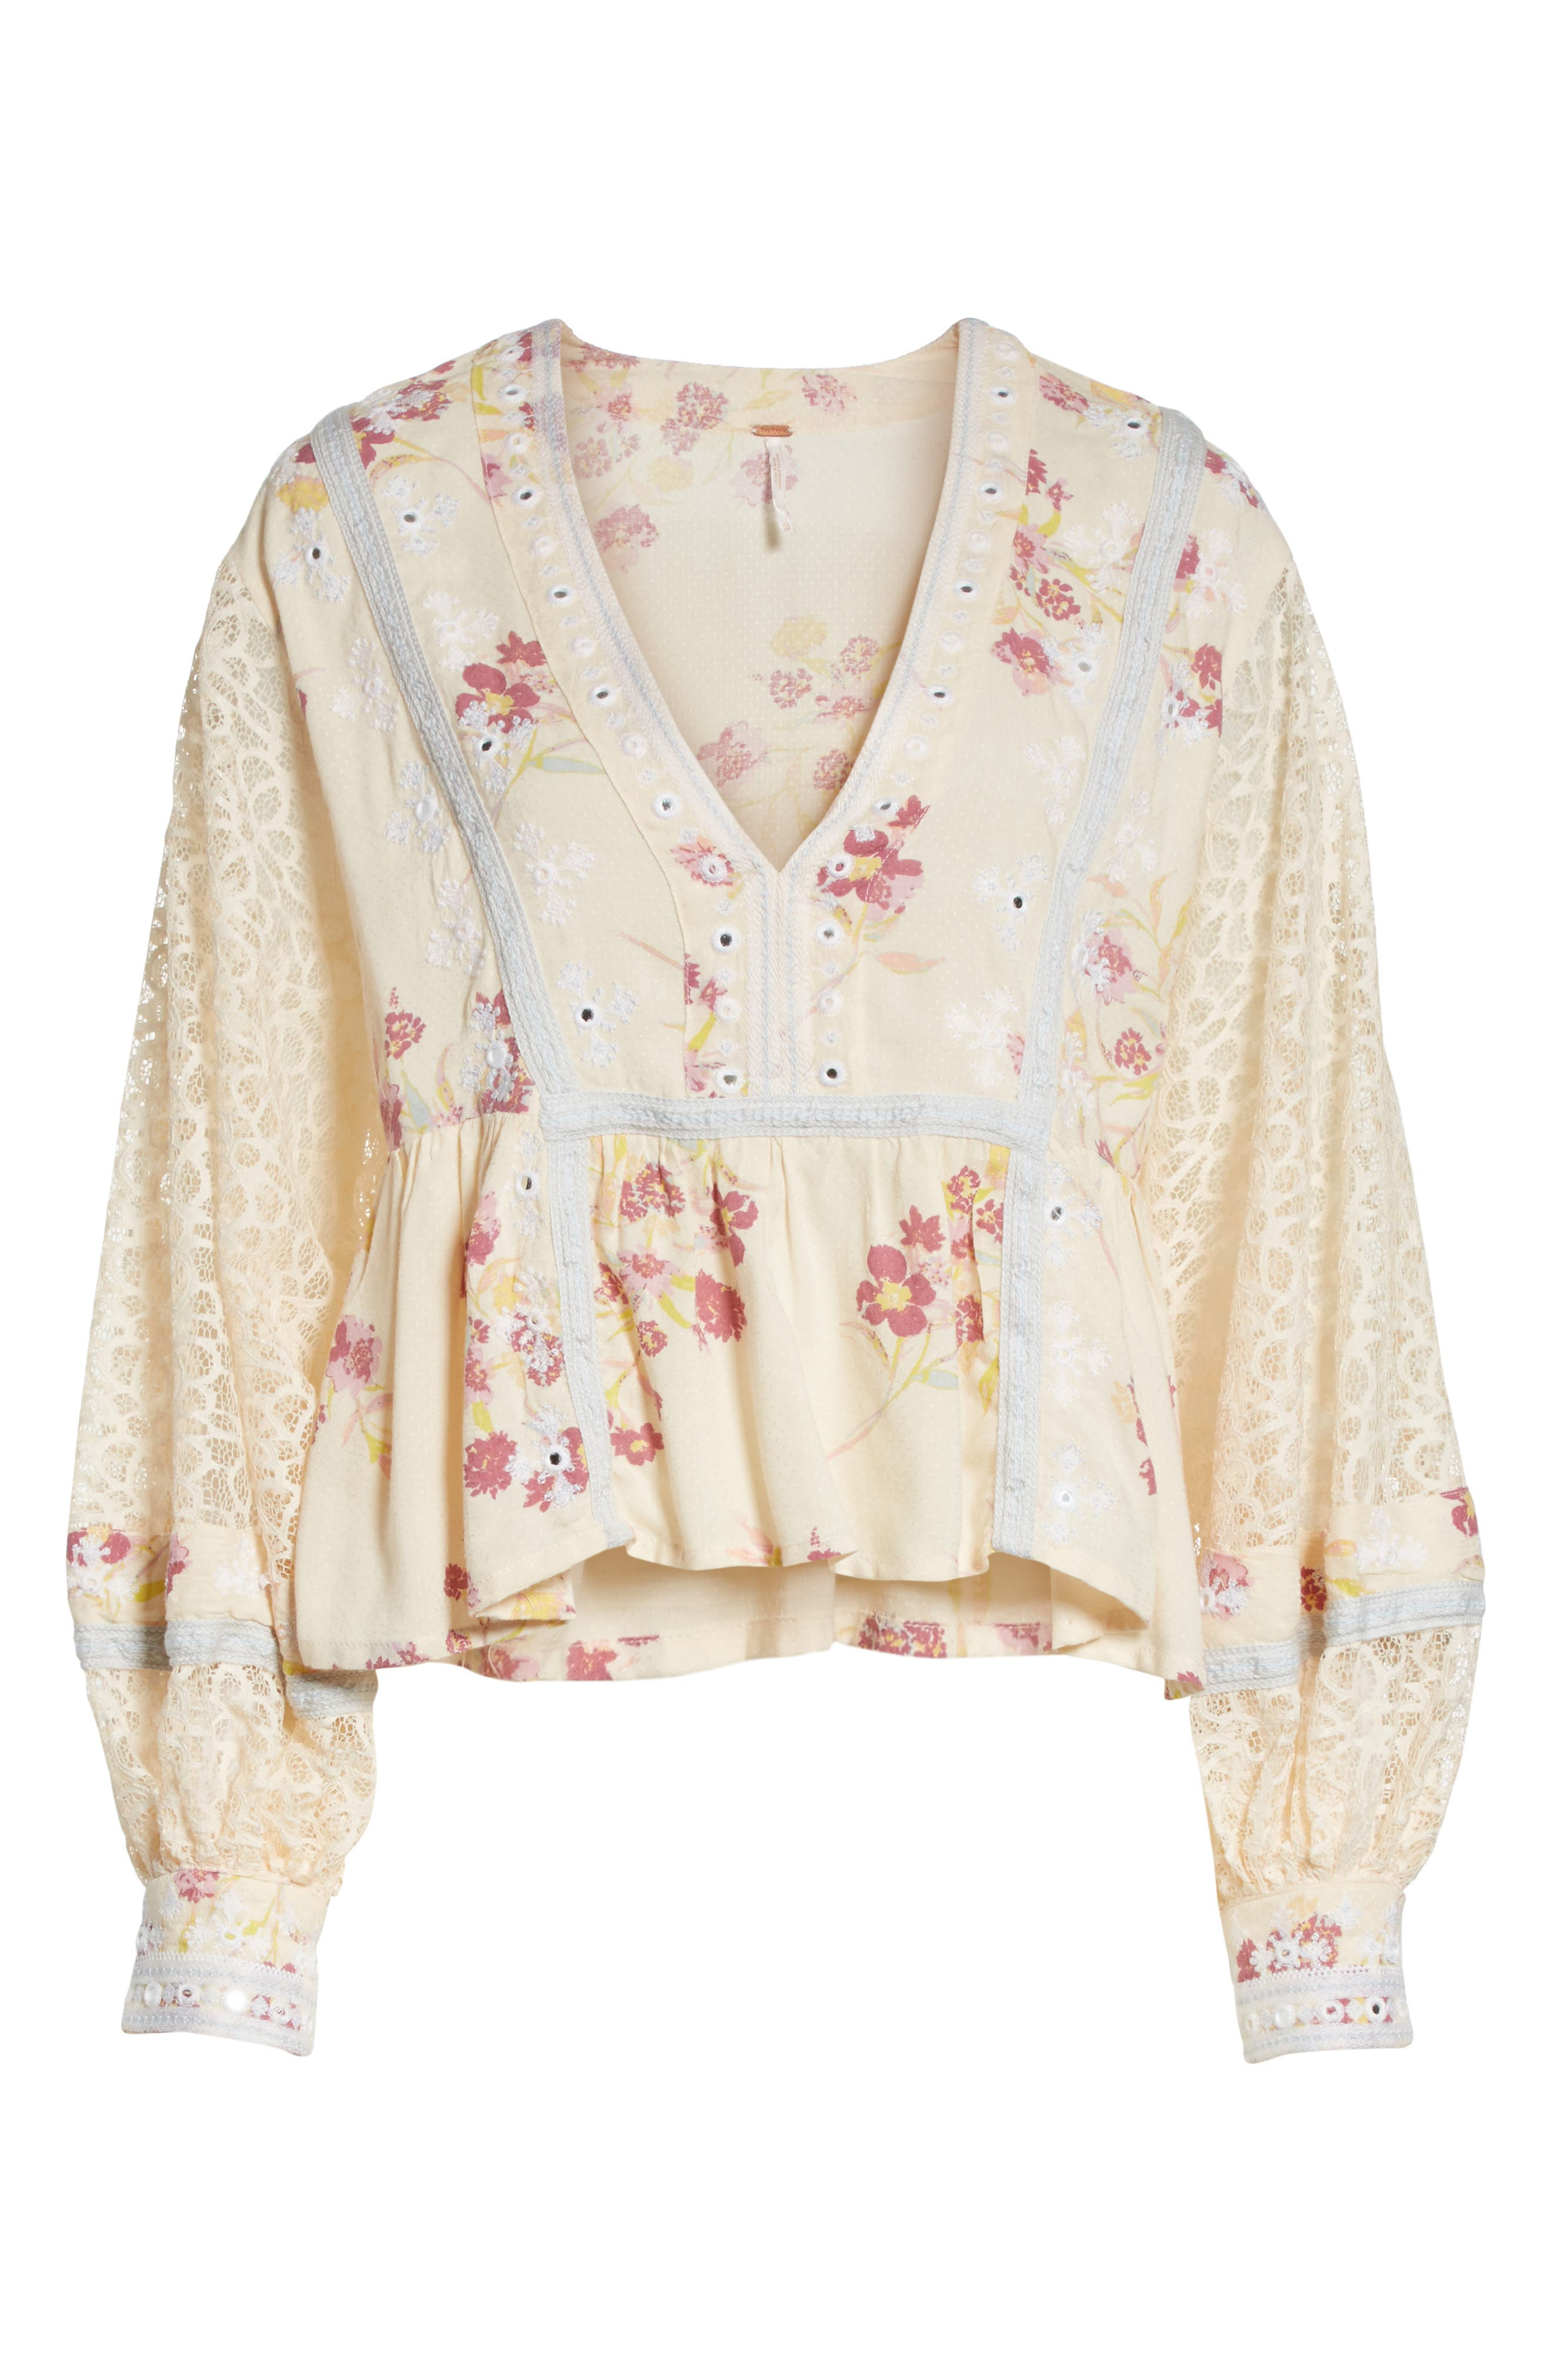 Boogie All Night Lace Sleeve Blouse,                             Main thumbnail 1, color,                             Ivory